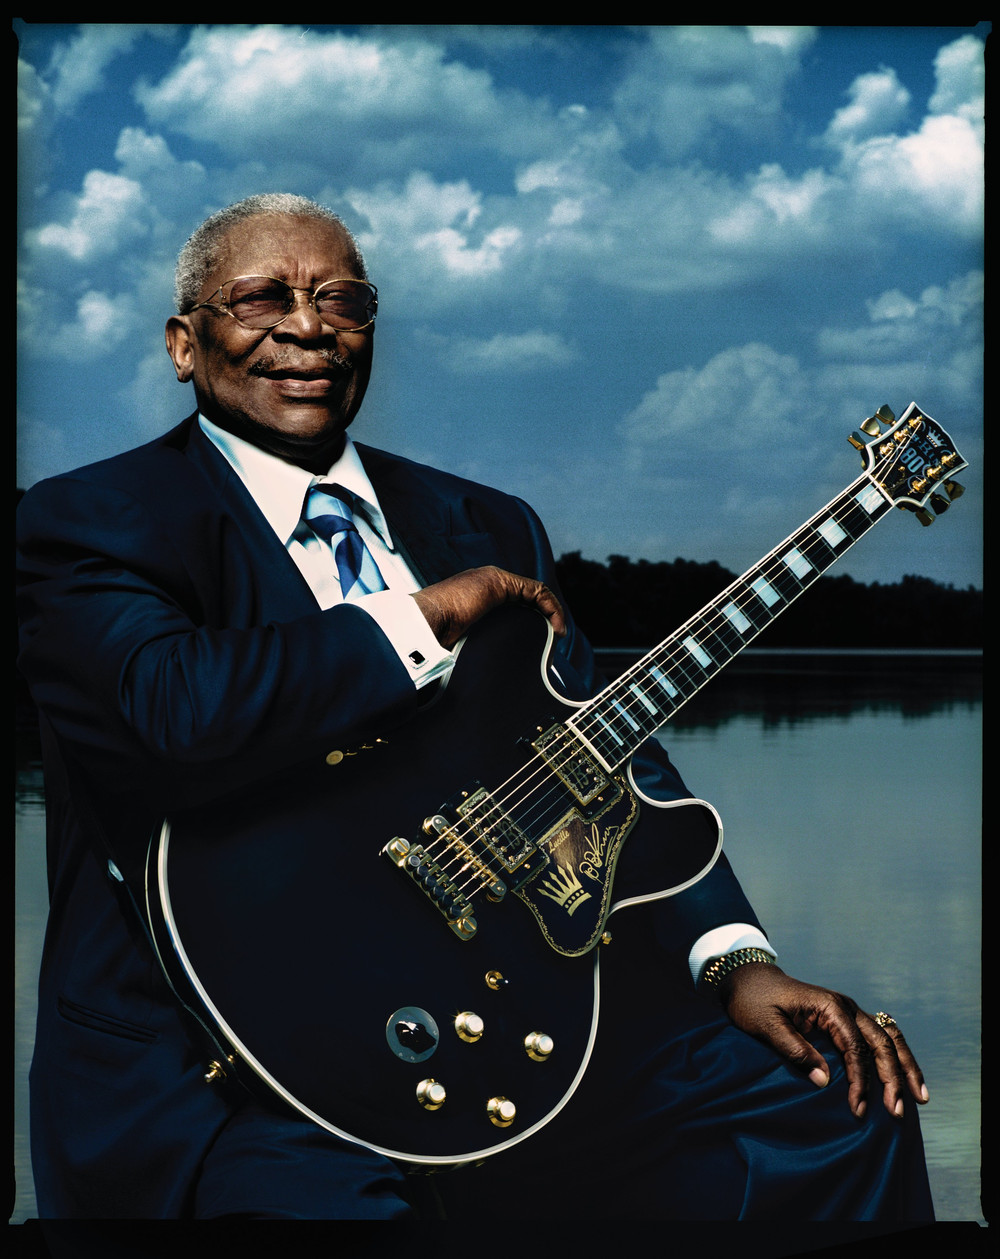 Rest in blues BB